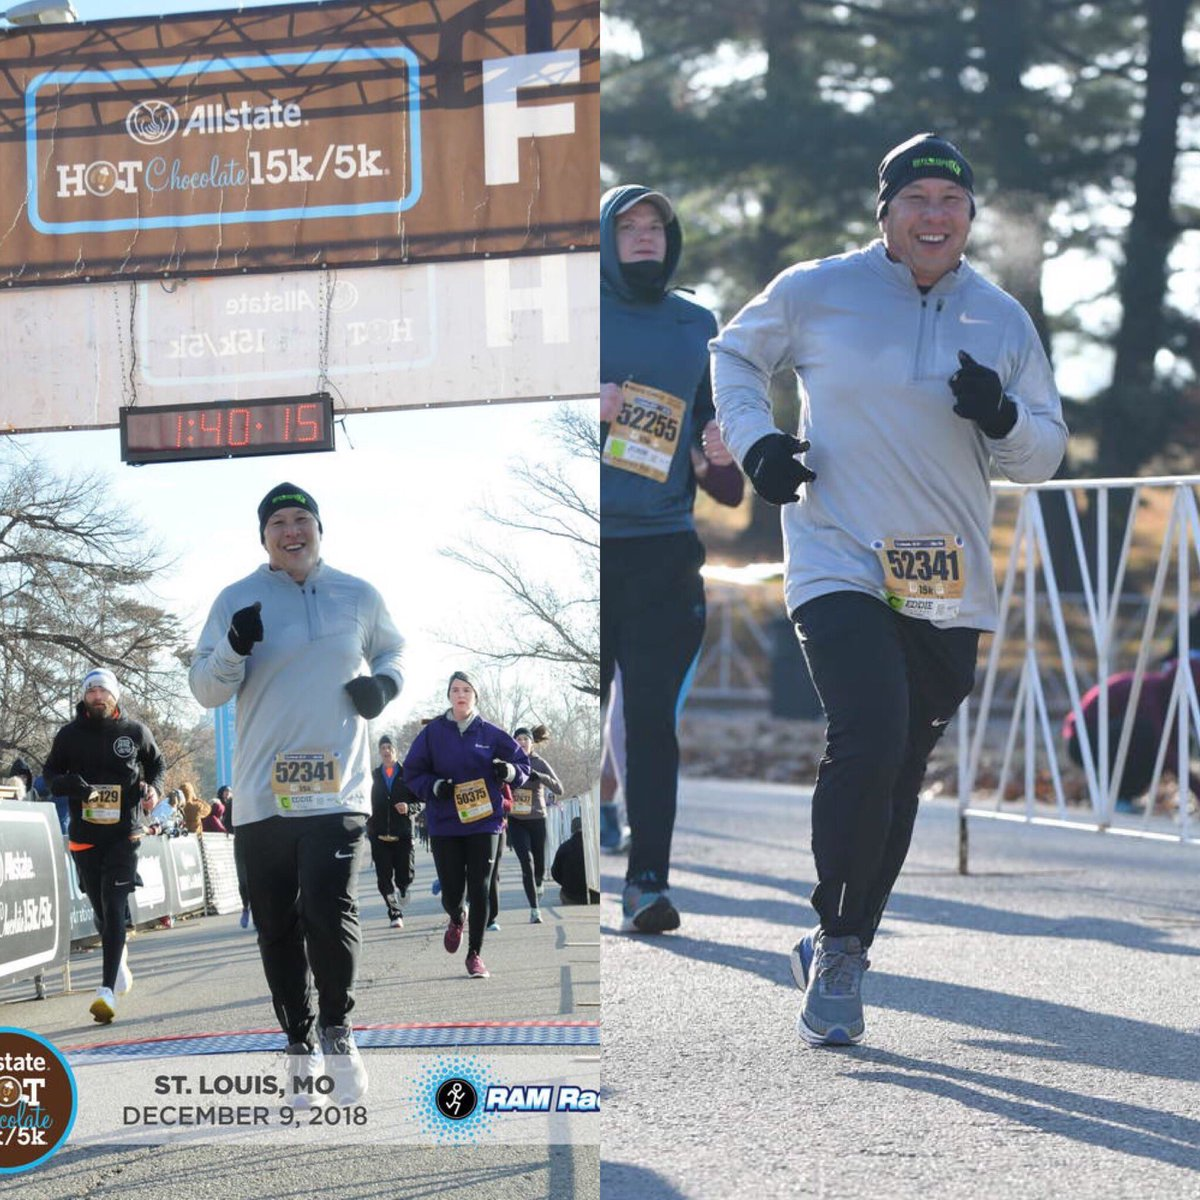 As most runners know, race pics are mostly a miss and capture the worst moments of a race. However, I like how these came out. #hc15k #runstl